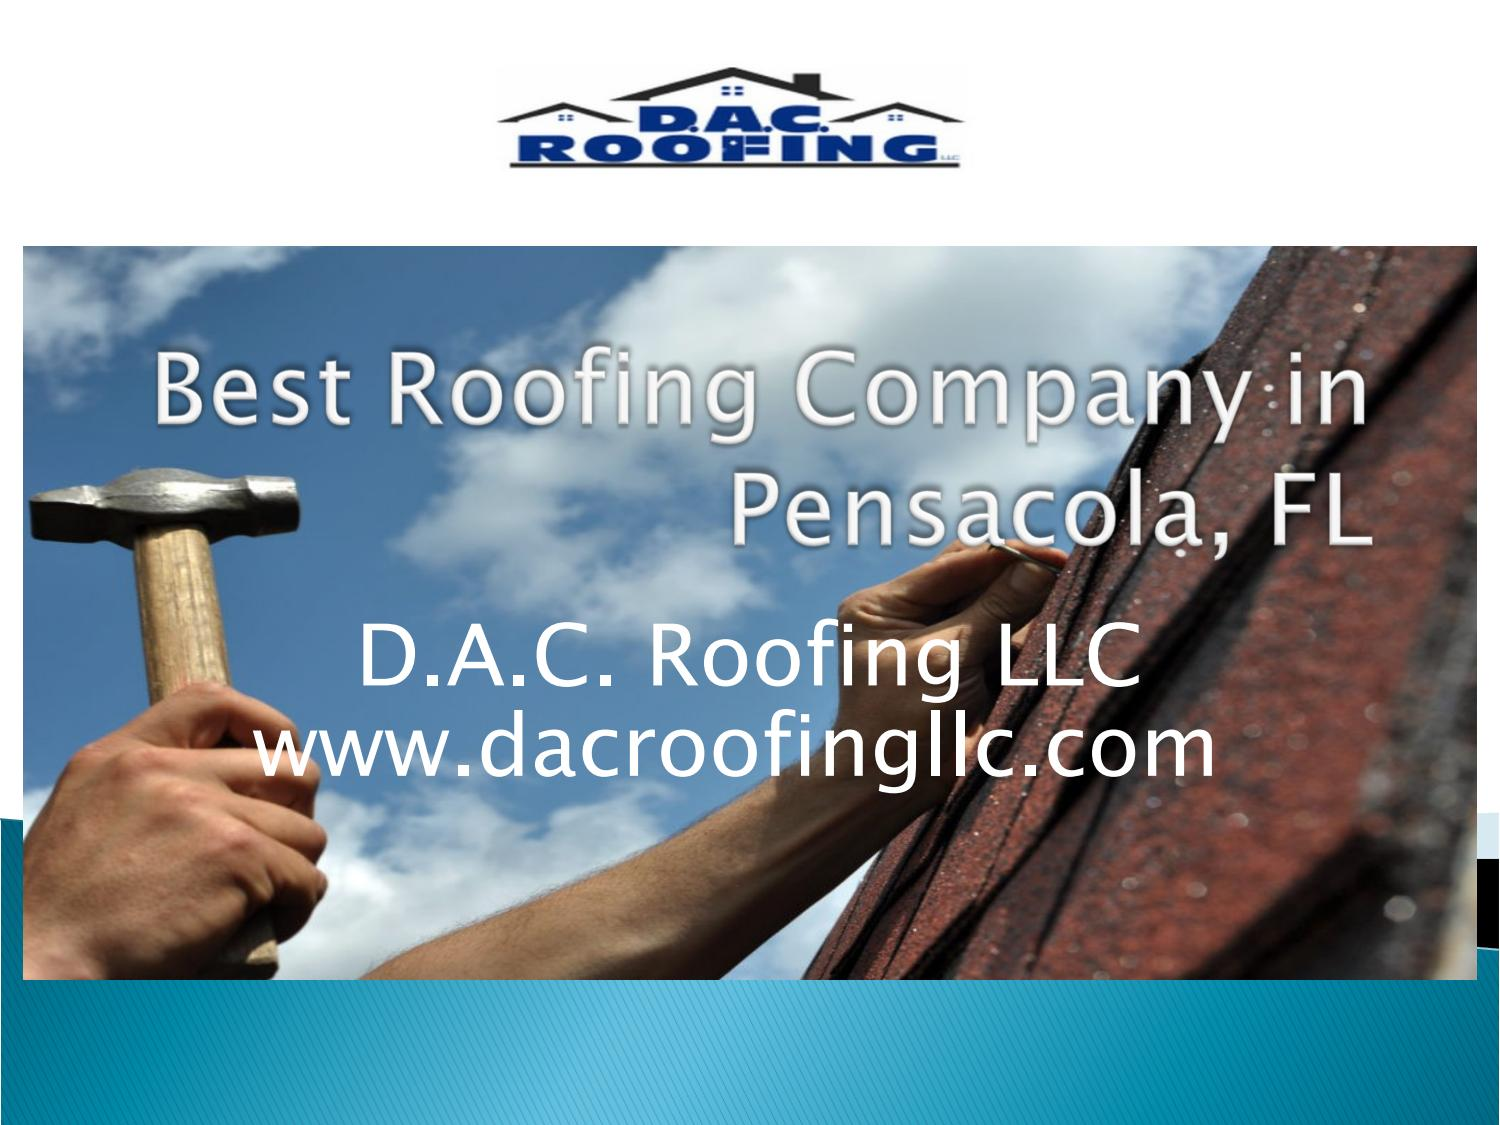 Best Roofing Company in Pensacola